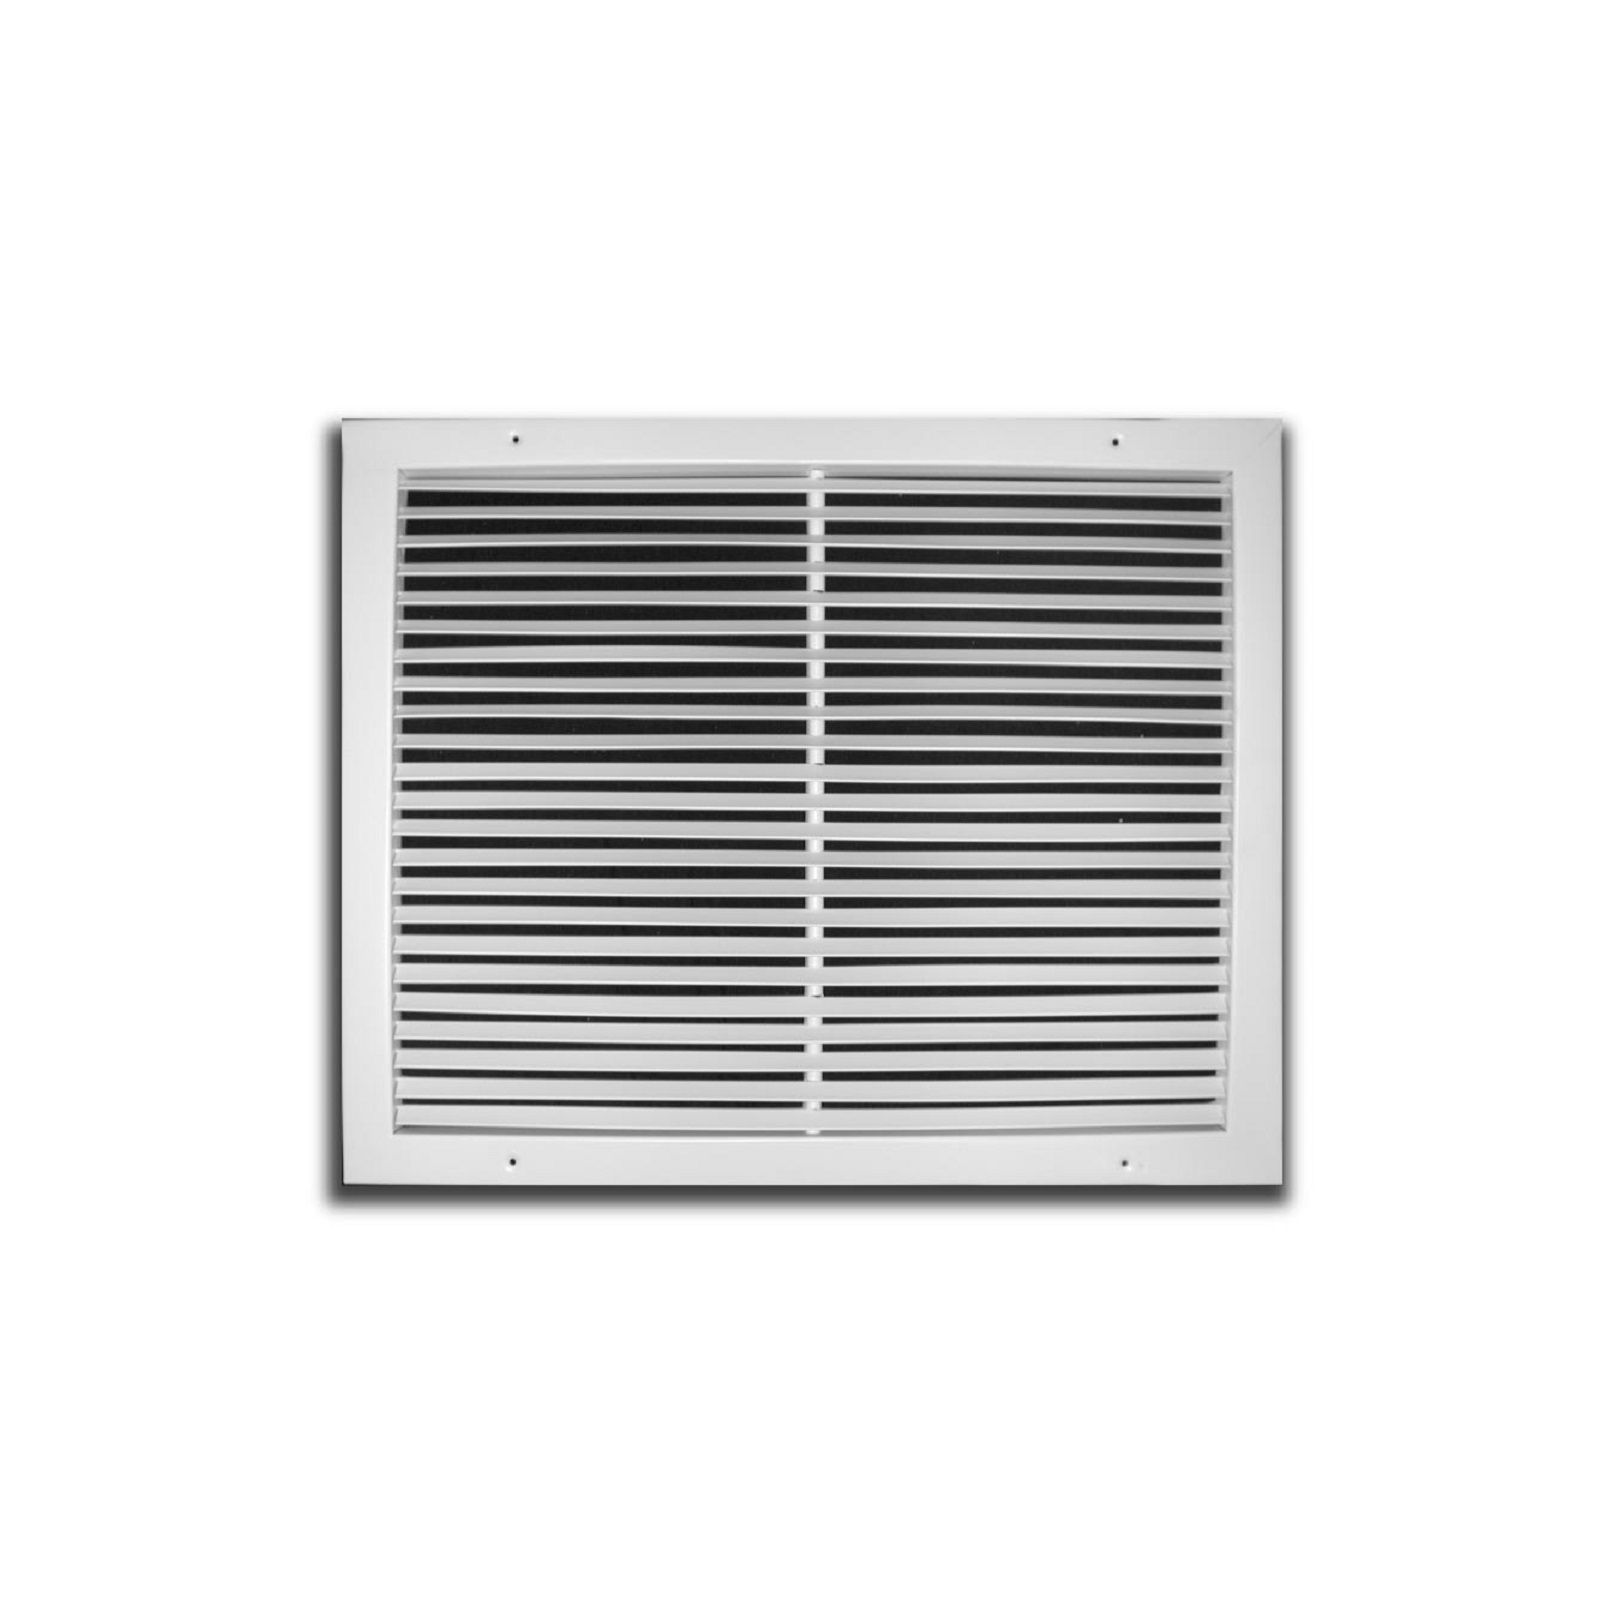 "TRUaire 270 14X20 - Steel Fixed Bar Return Air Grille, White, 14"" X 20"""